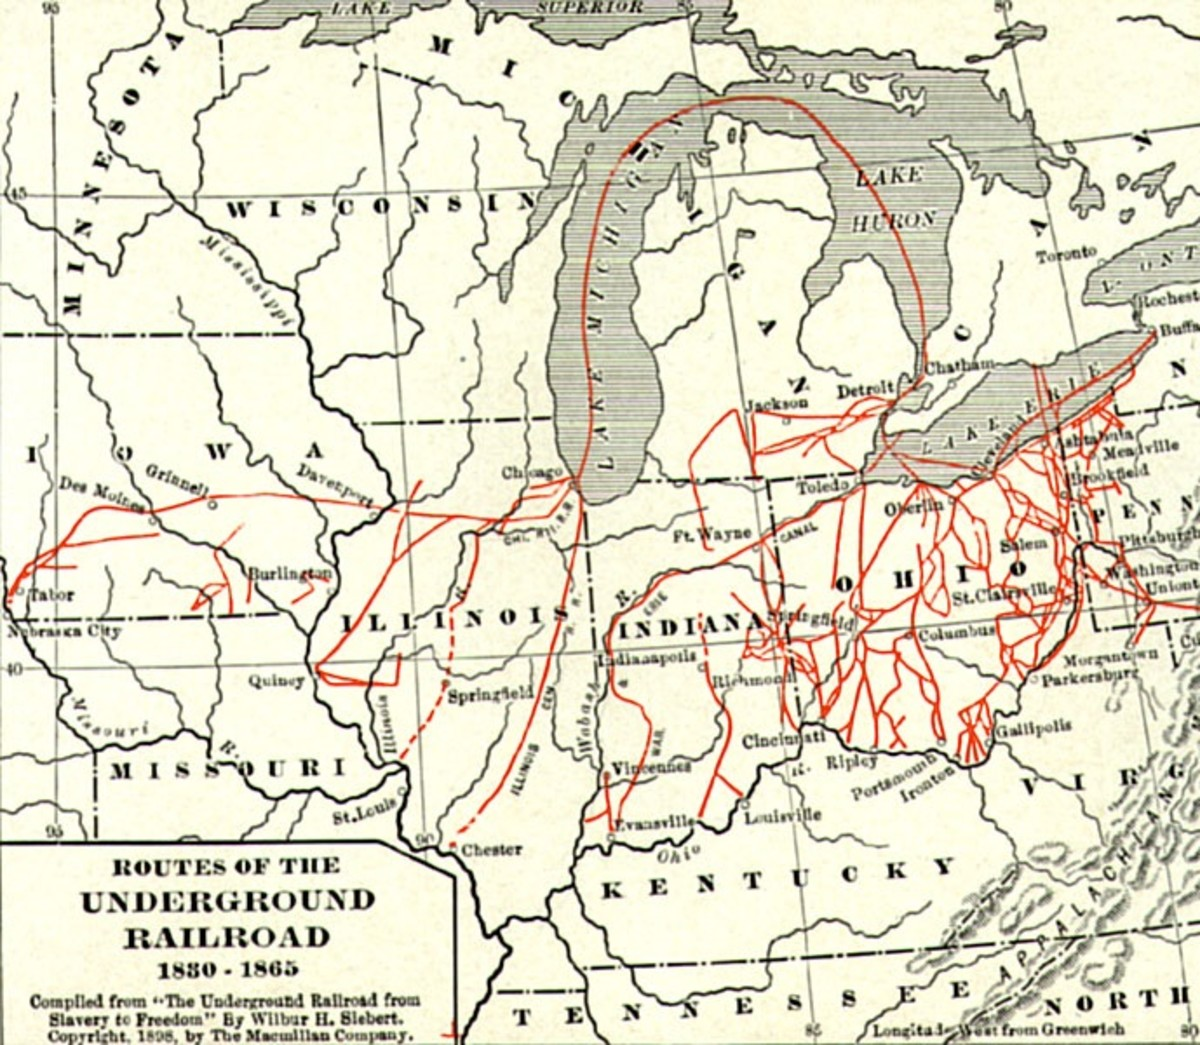 Routes of the Underground Railroad in and out of Ohio. Notice Oberlin on Lake Erie.